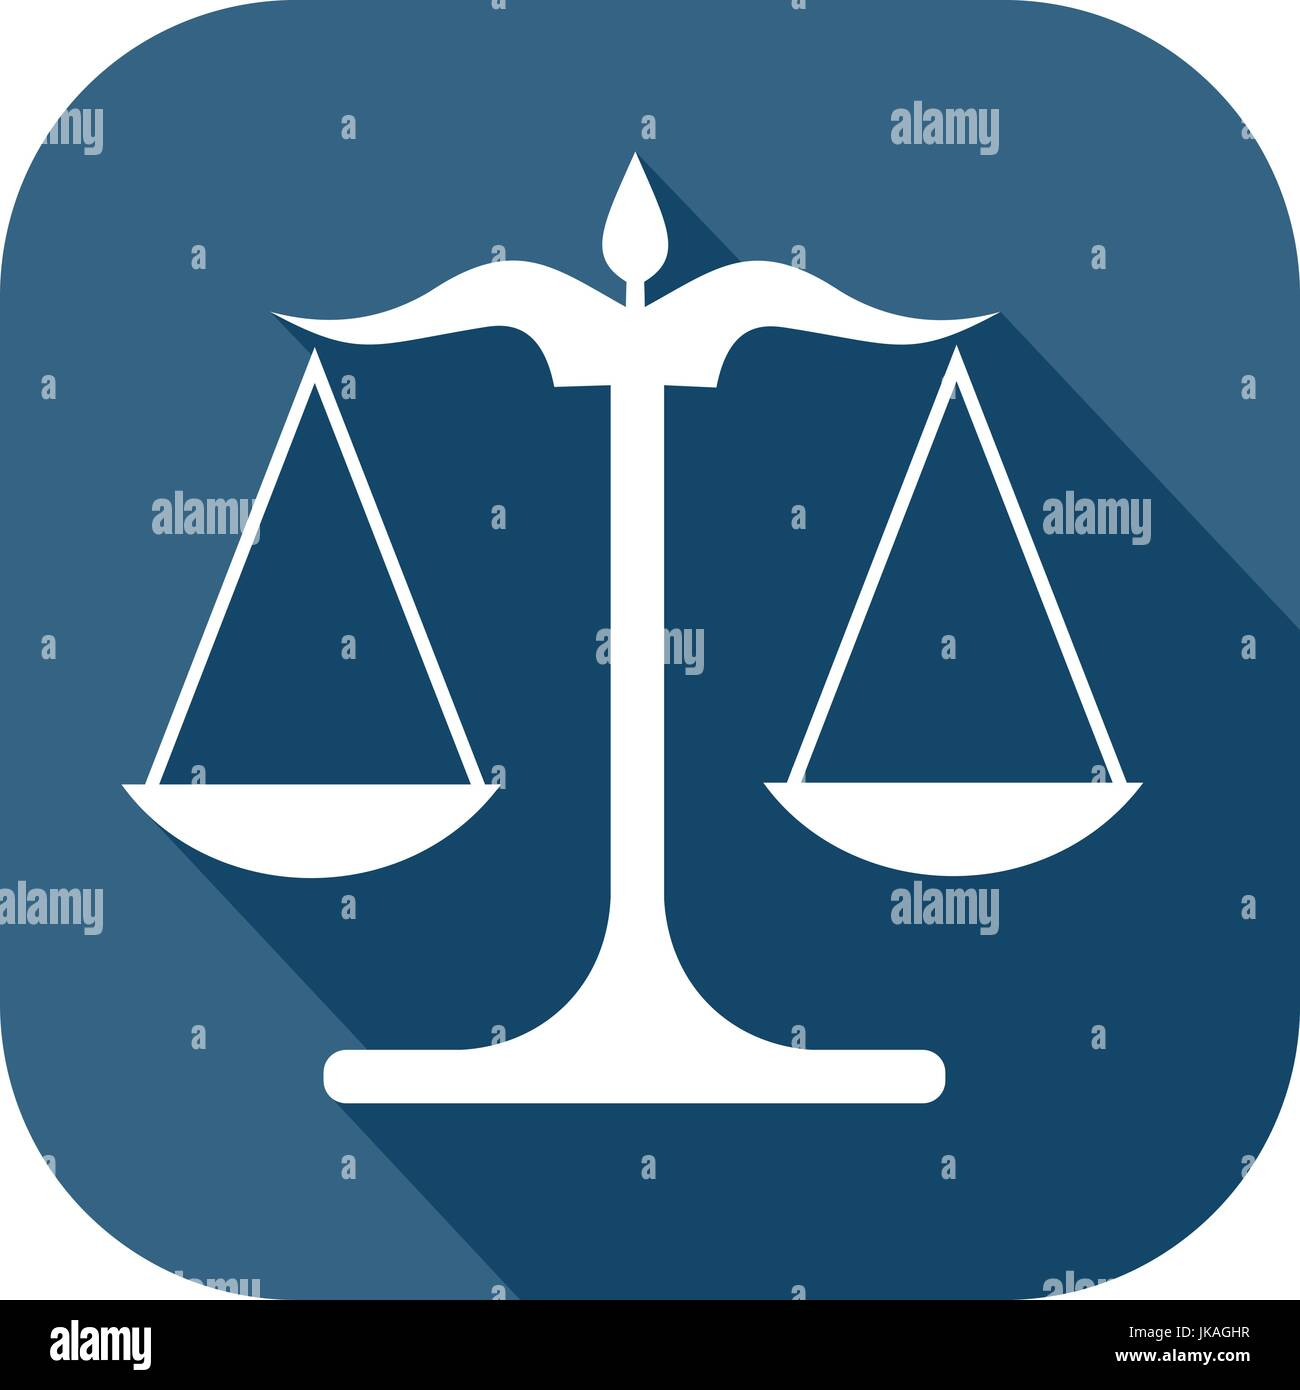 Blue and white icon of a scale to illustrate justice and law - Stock Vector